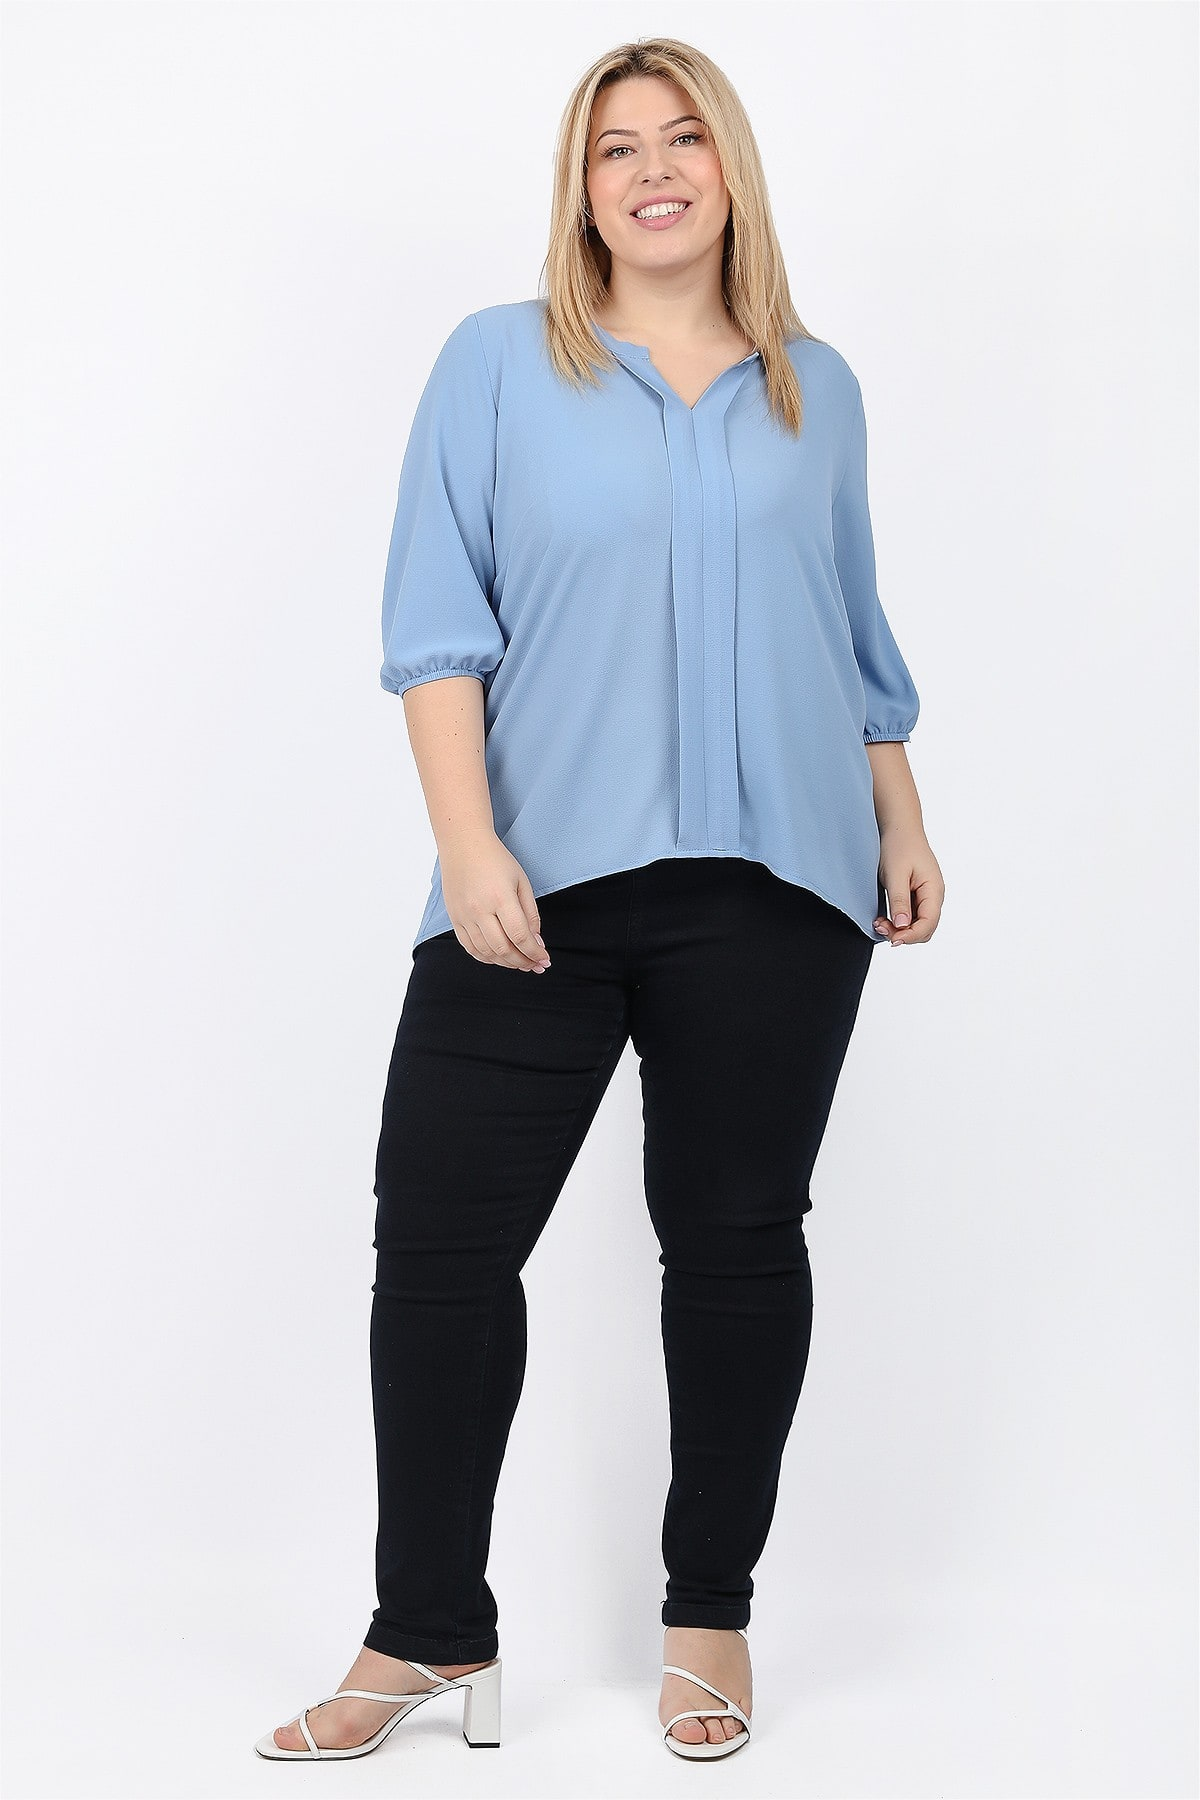 Shirtblouse with double vertical pleat at the front